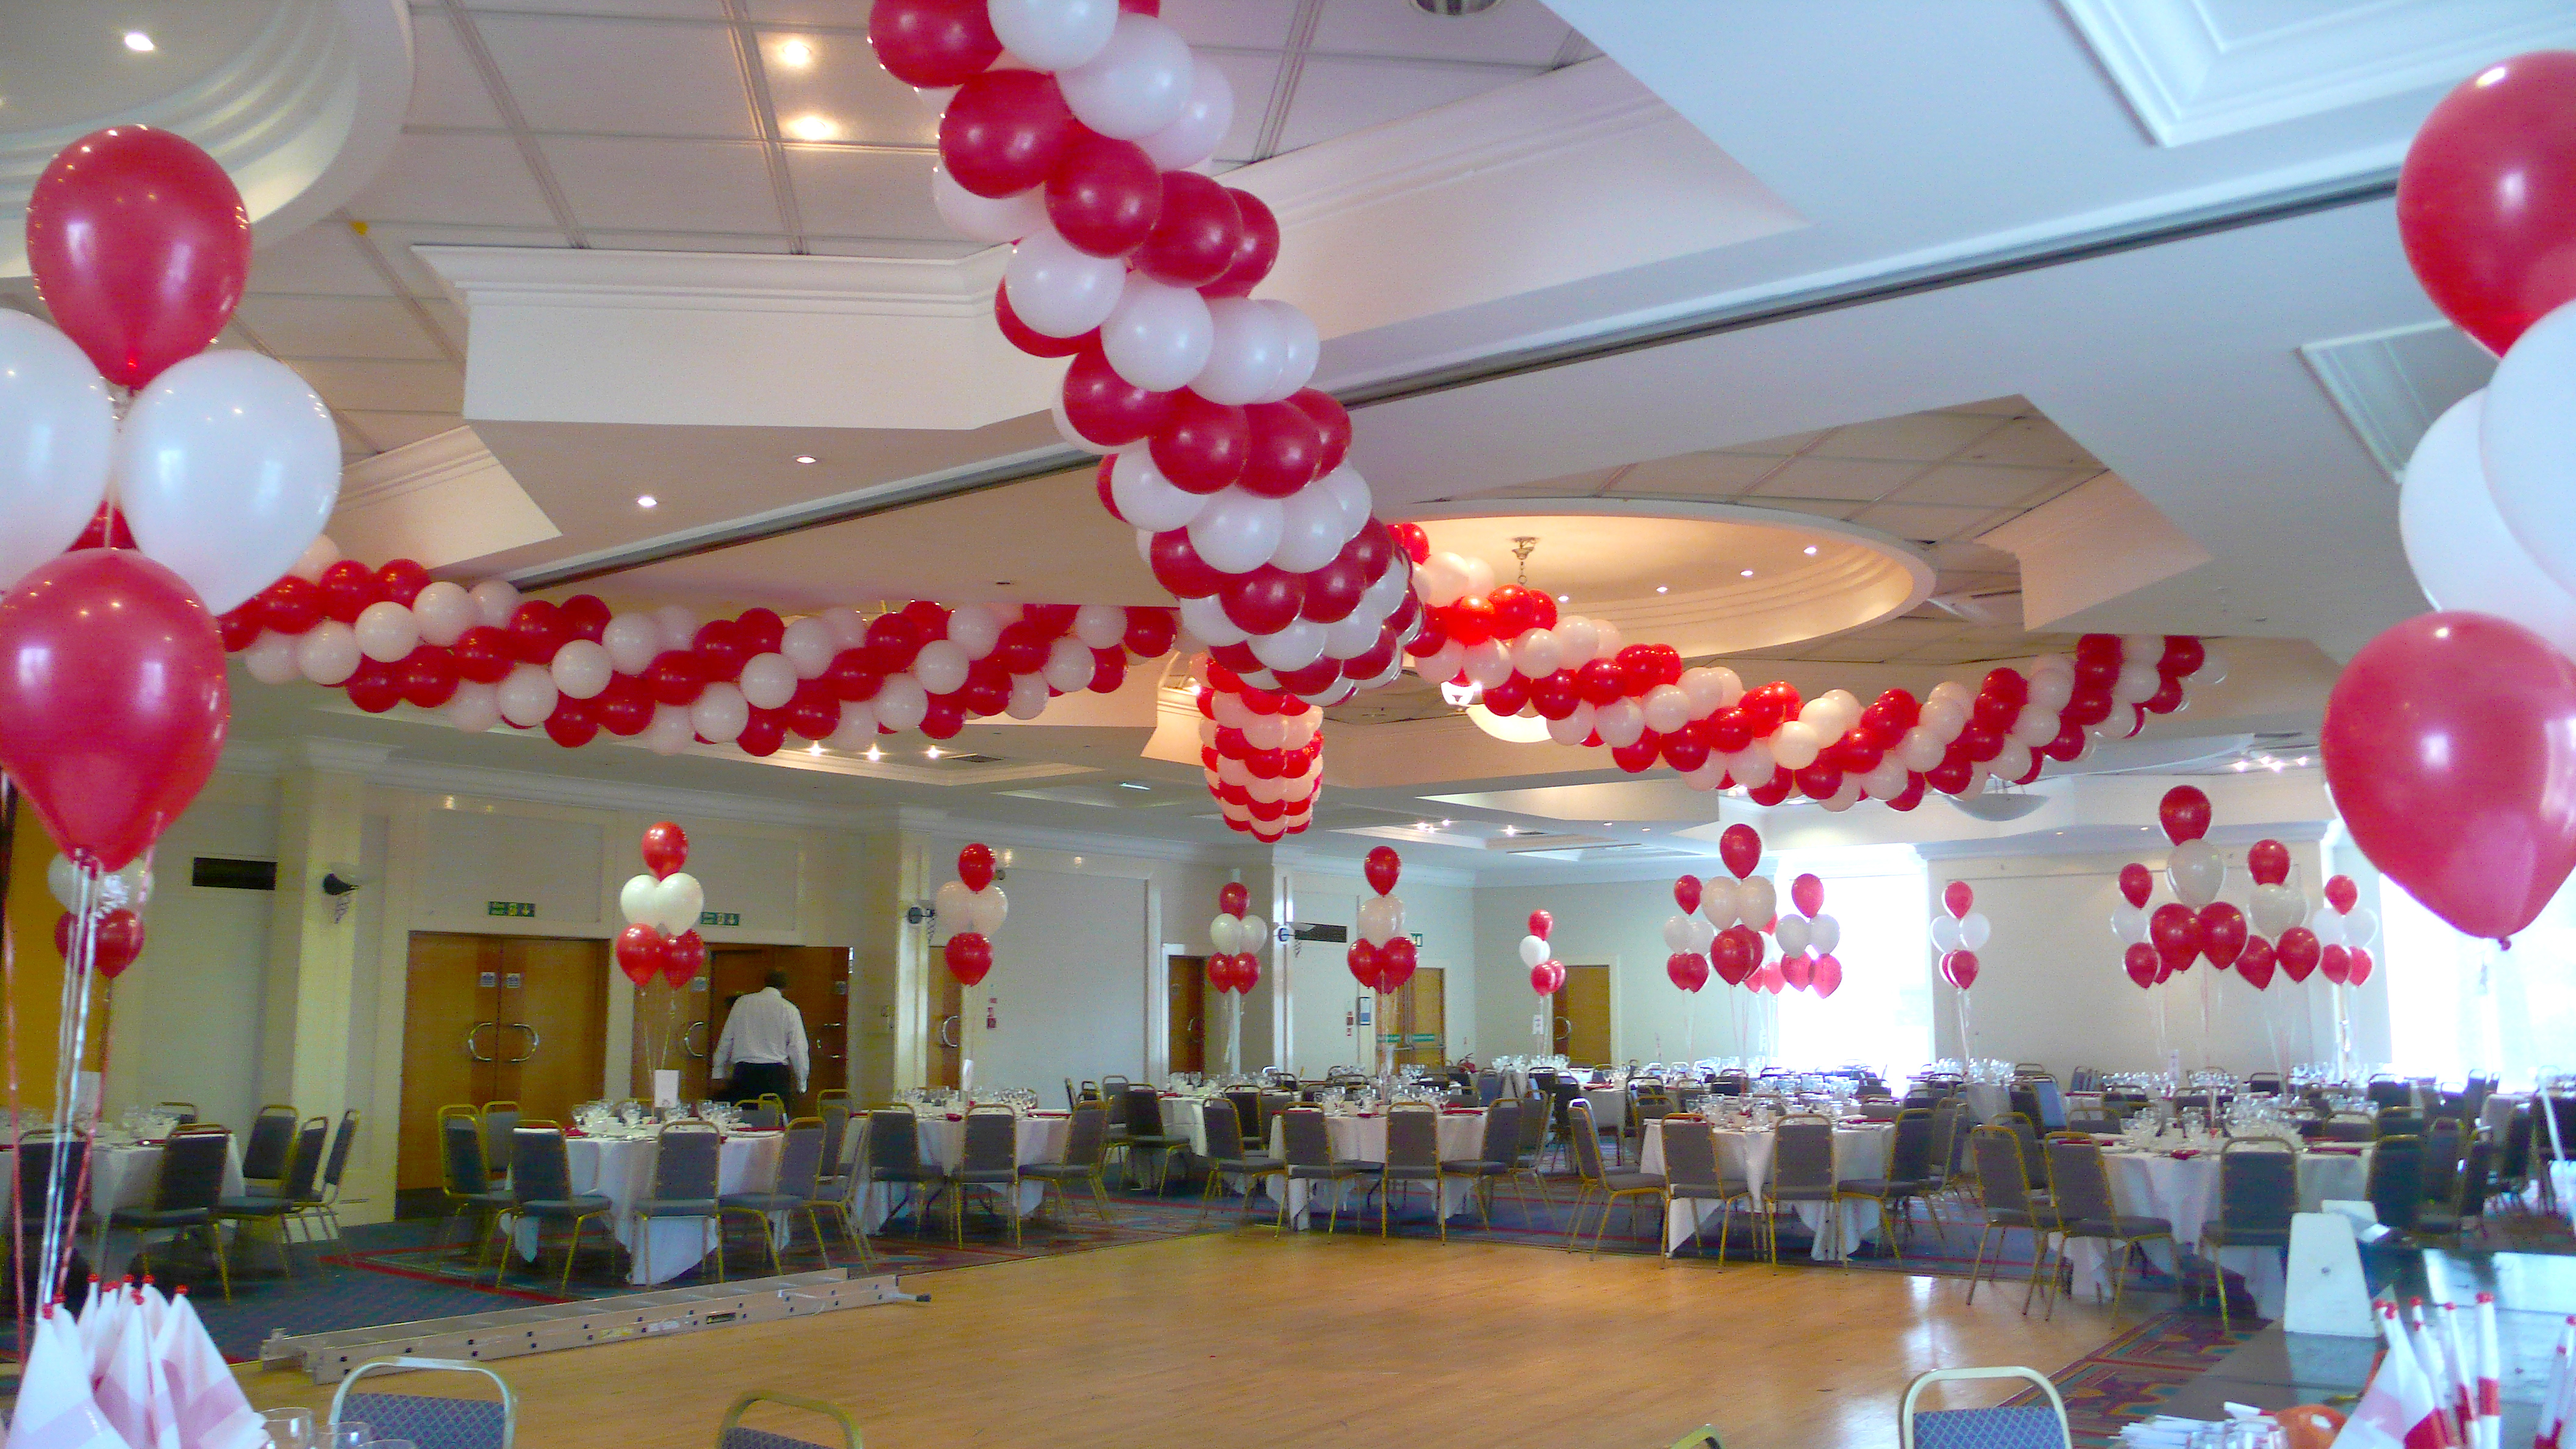 St georges day the great british balloon company for Balloon decoration company